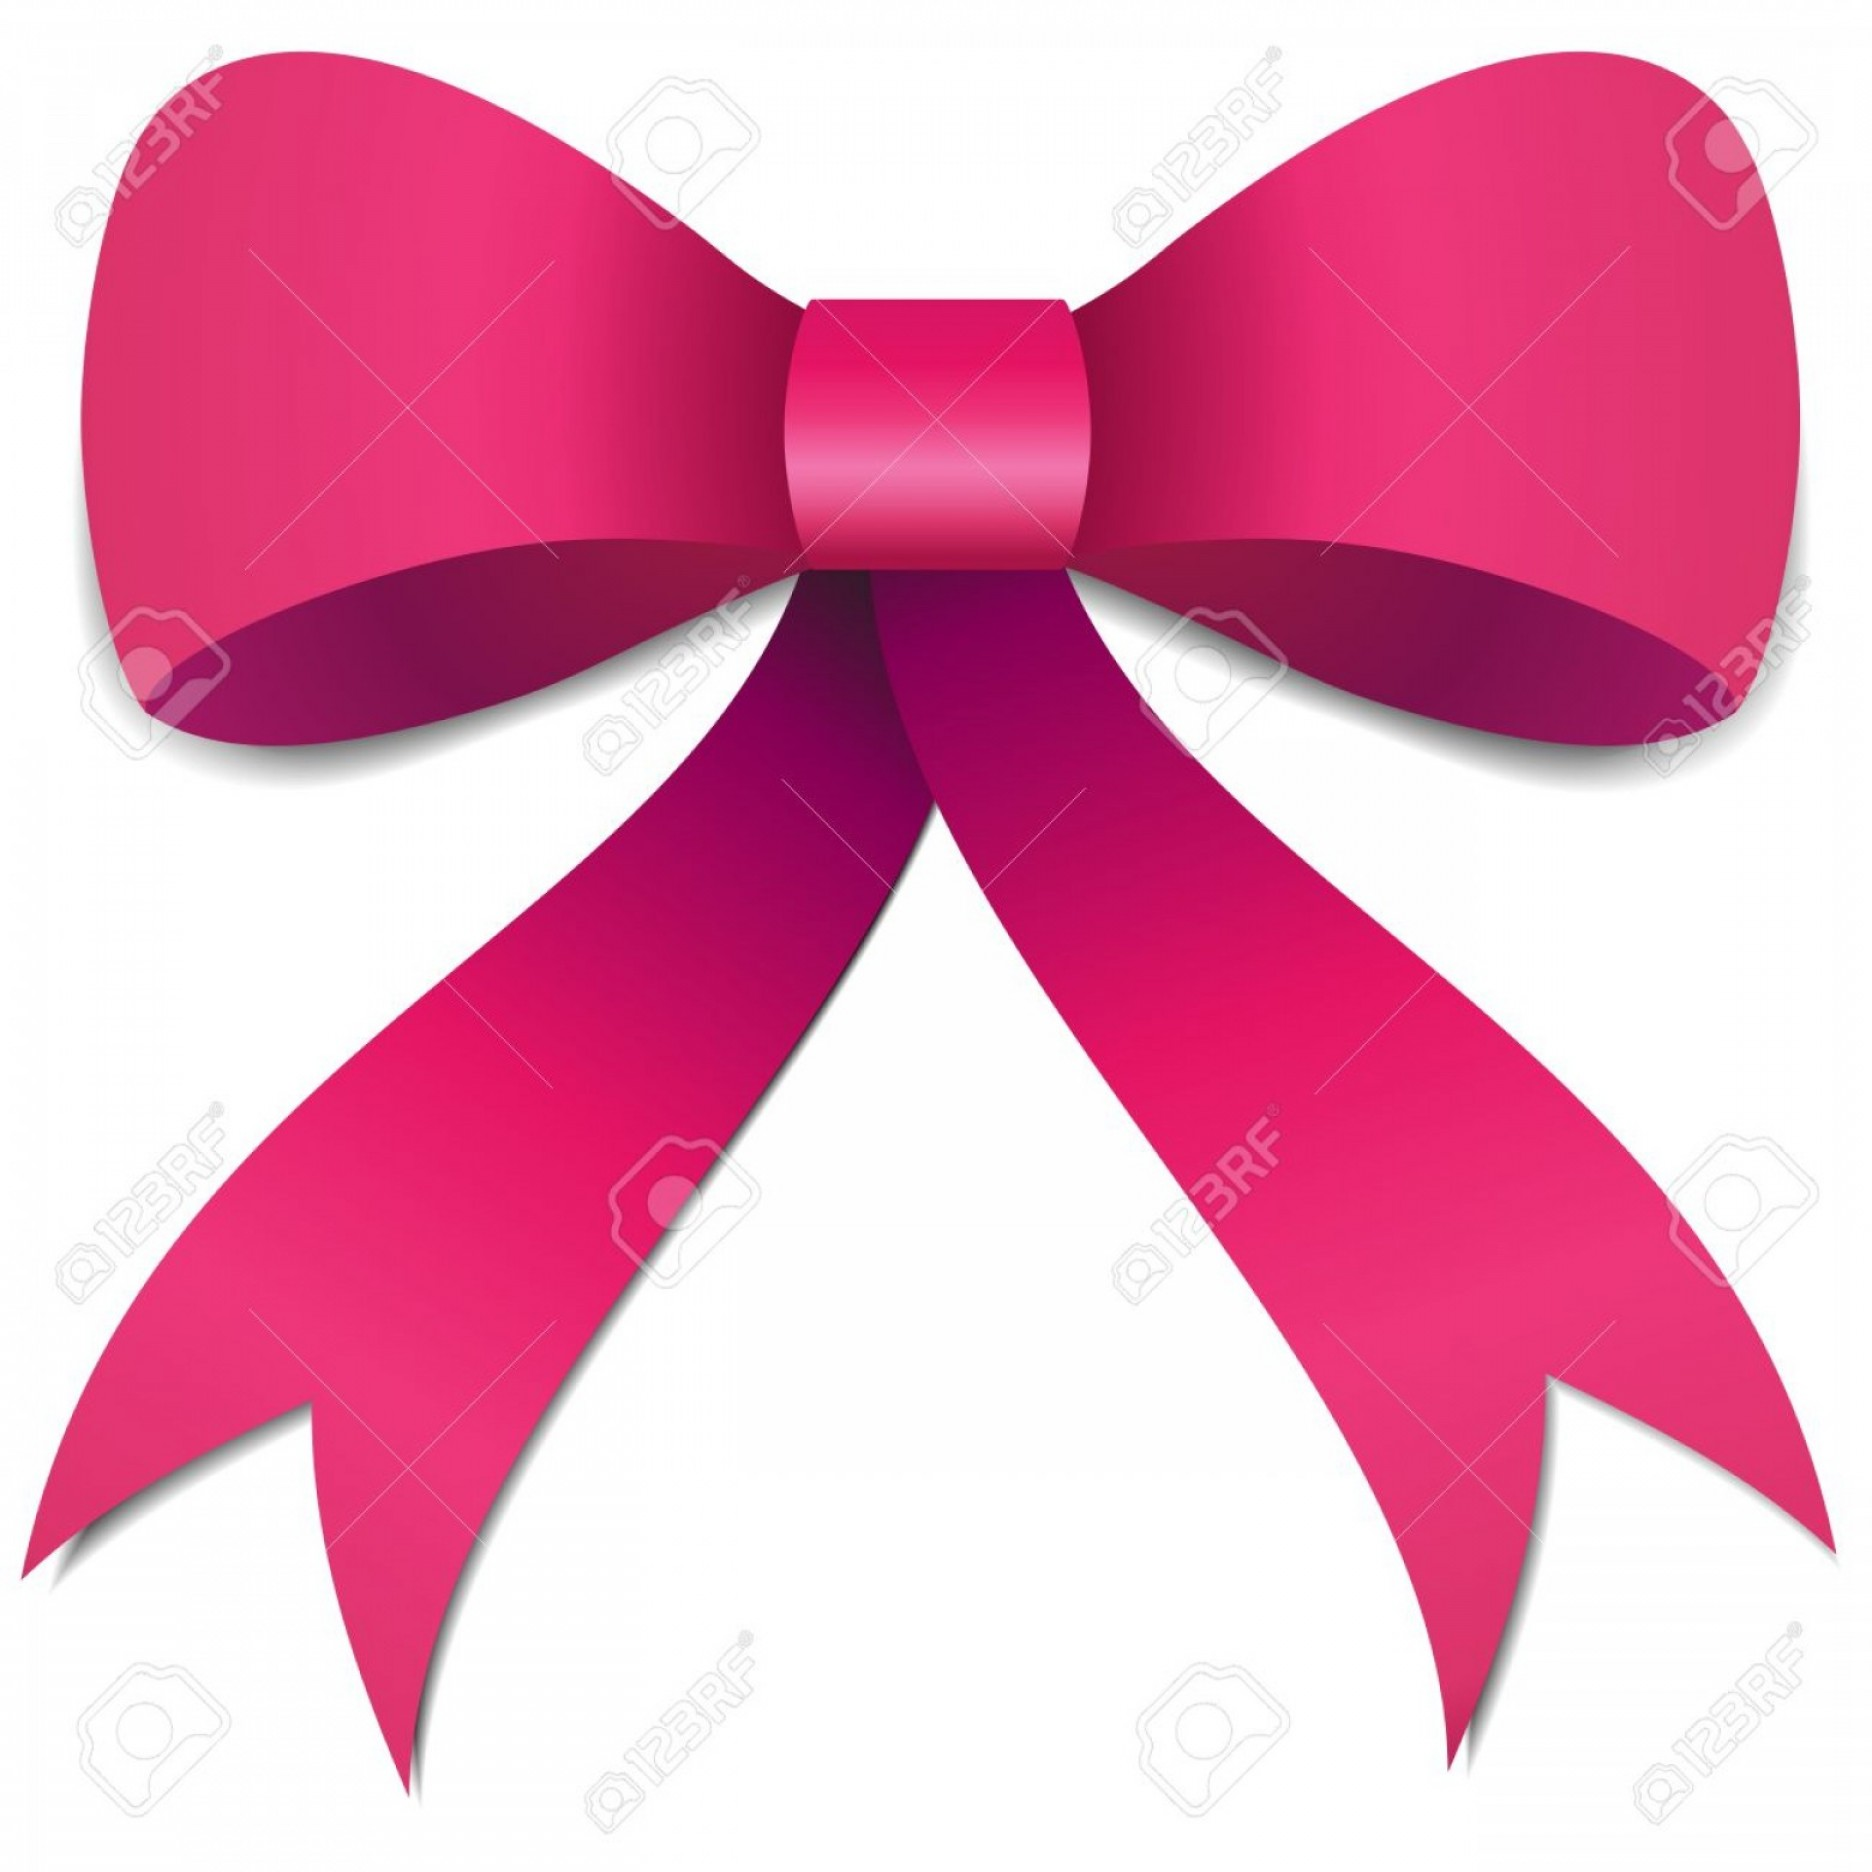 Pink Ribbon Vector Graphic: Photobig Pink Girls Bow Illustration With Gradients And Opacity Eps Version